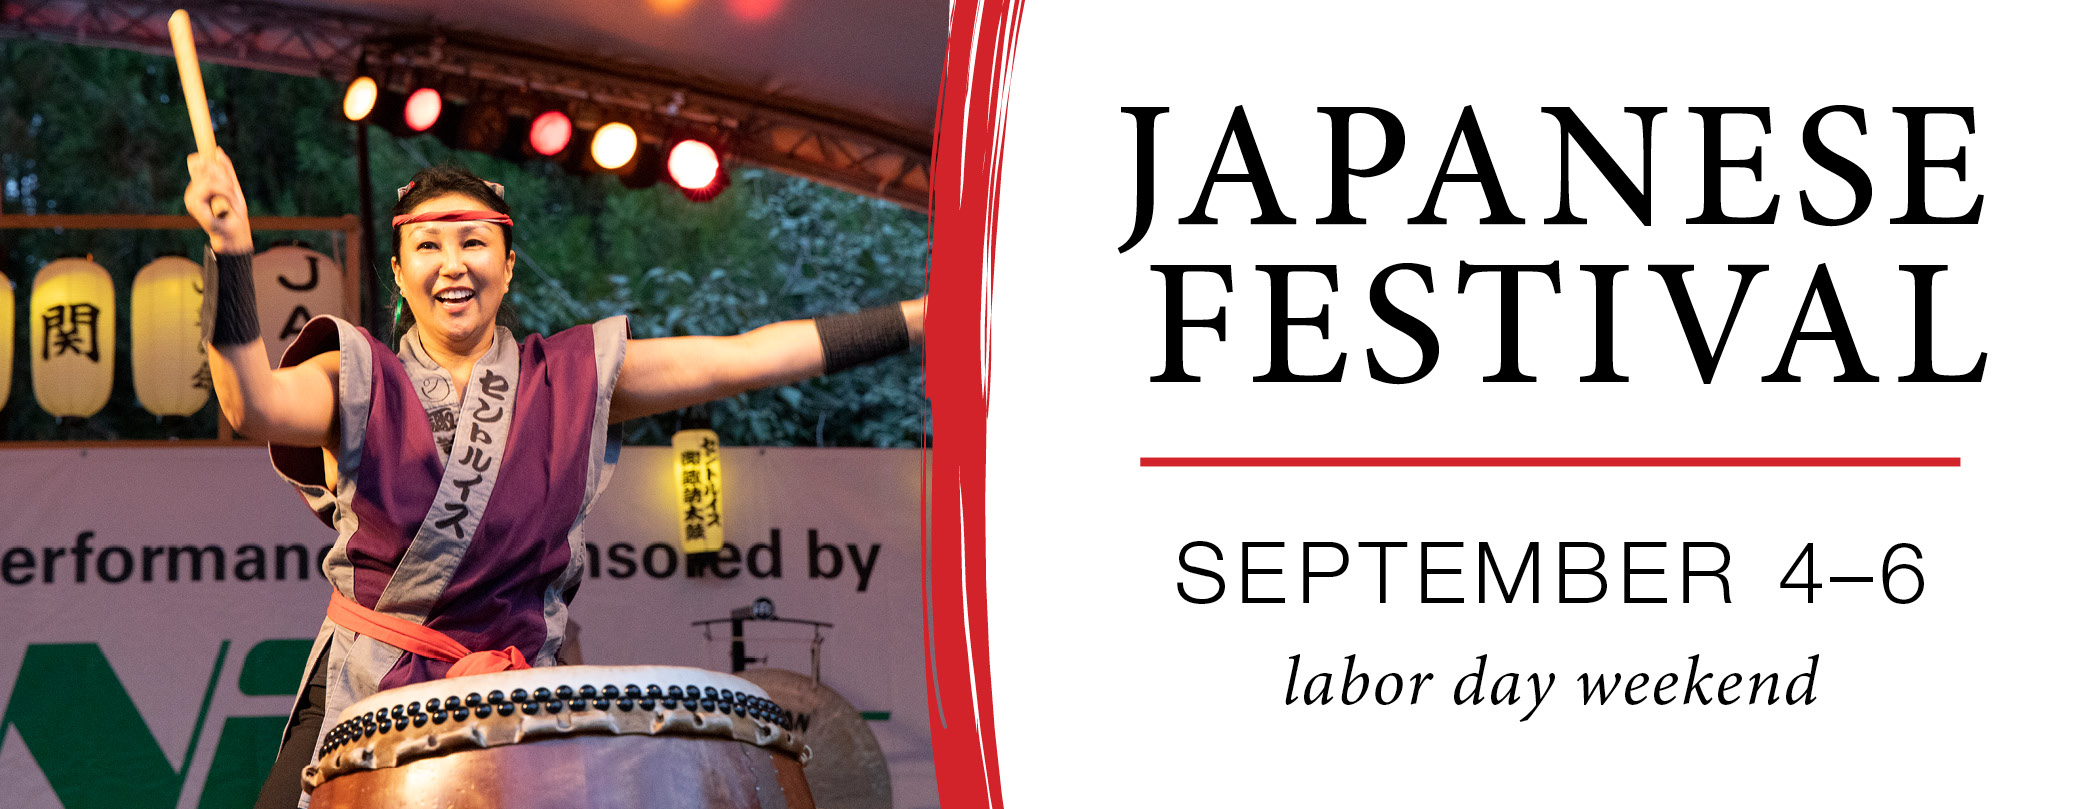 Japanese Festival Tickets   September 4–, 2021   9 a.m. to 8 p.m. Saturday and Sunday, 9 a.m. to 5 p.m. Monday